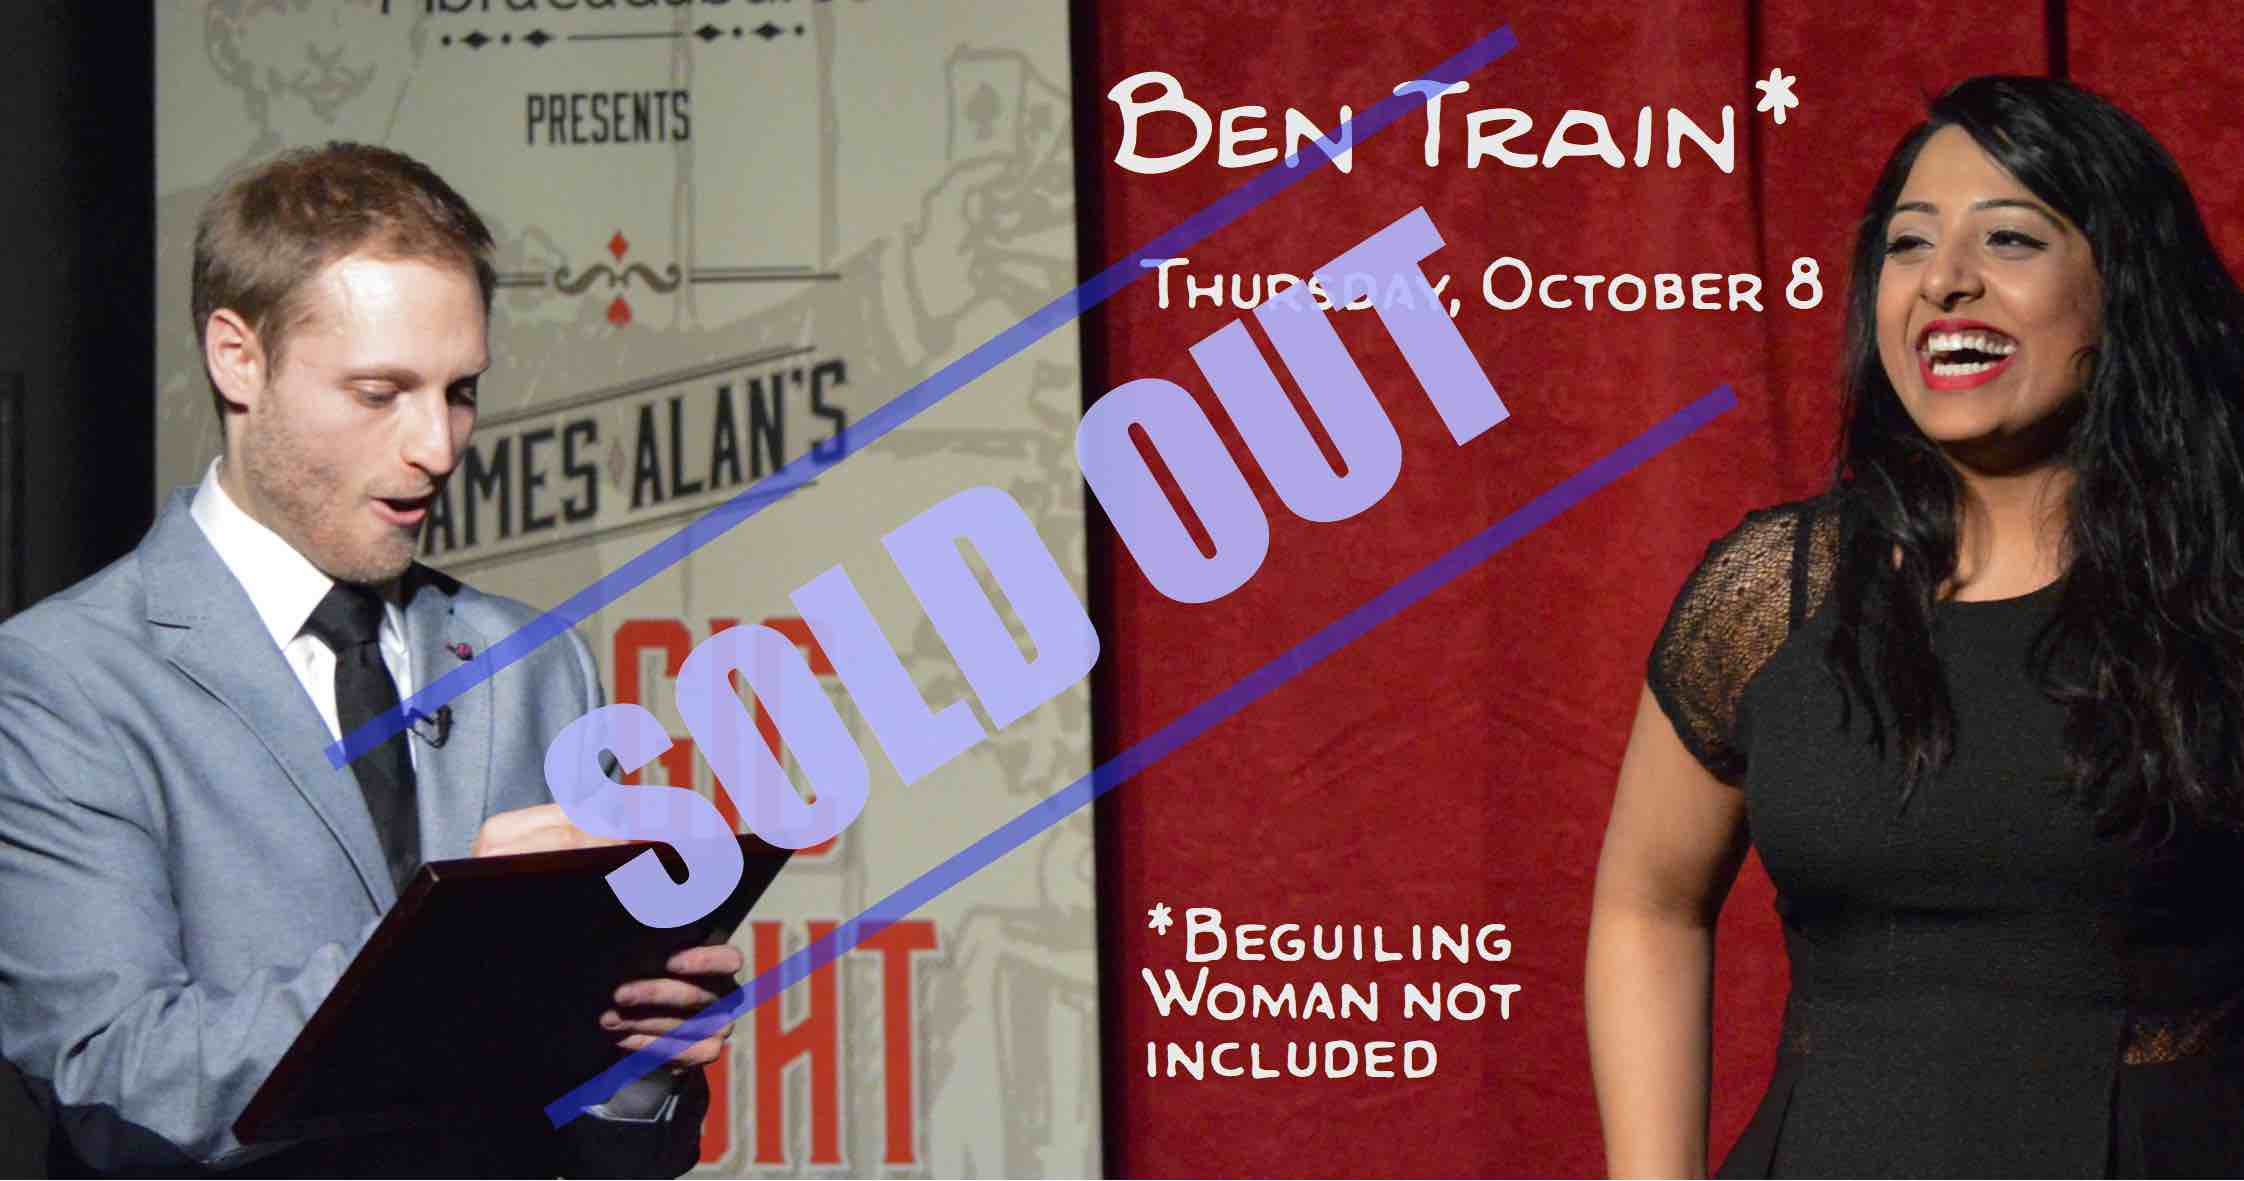 October 8 Ben Train sold out